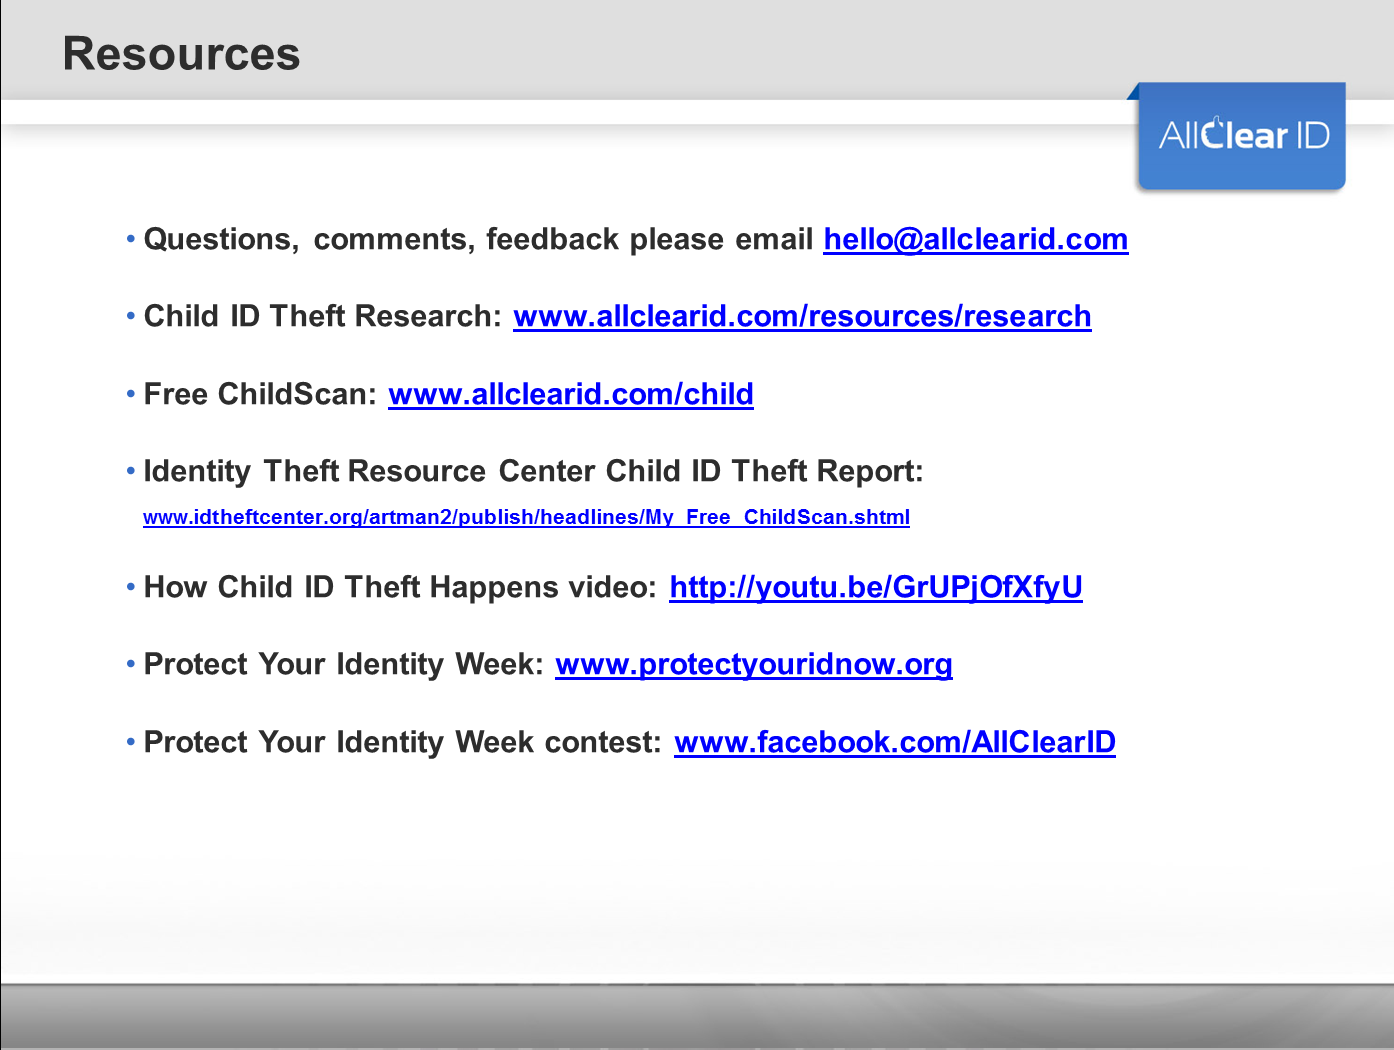 Questions, comments, feedback please email hello@allclearid.com Child ID Theft Research: www.allclearid.com/resources/research Free ChildScan: www.allclearid.com/child Identity Theft Resource Center Child ID Theft Report: www.